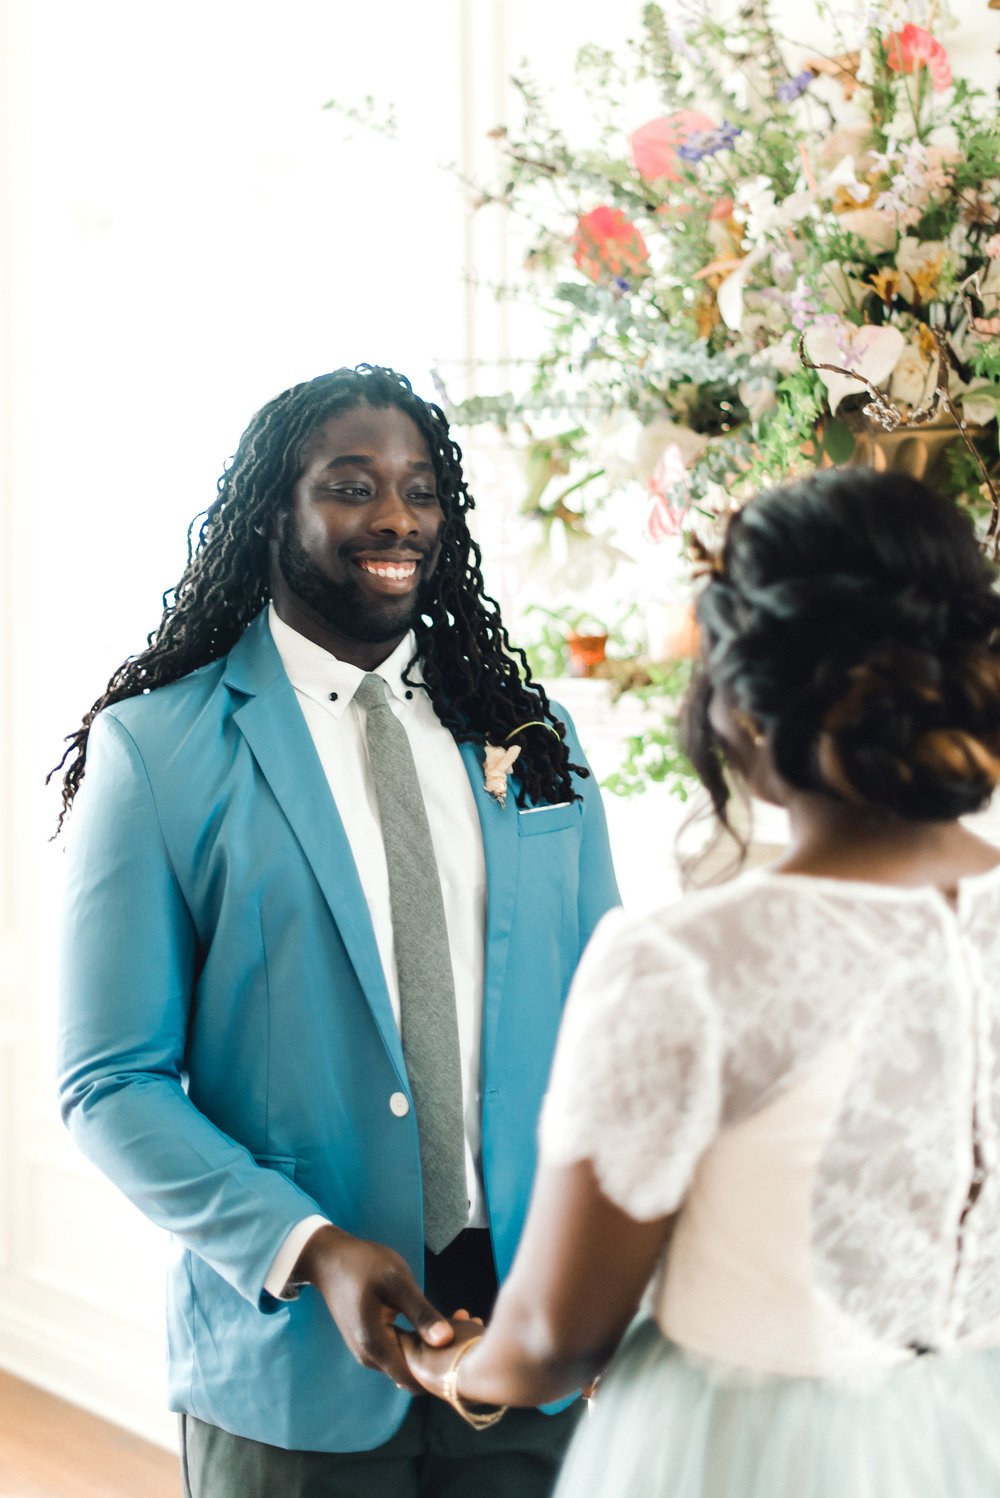 Groom's style for Pablo Neruda enchanting garden styled shoot planned by Exhale Events. Get inspired at exhale-events.com!